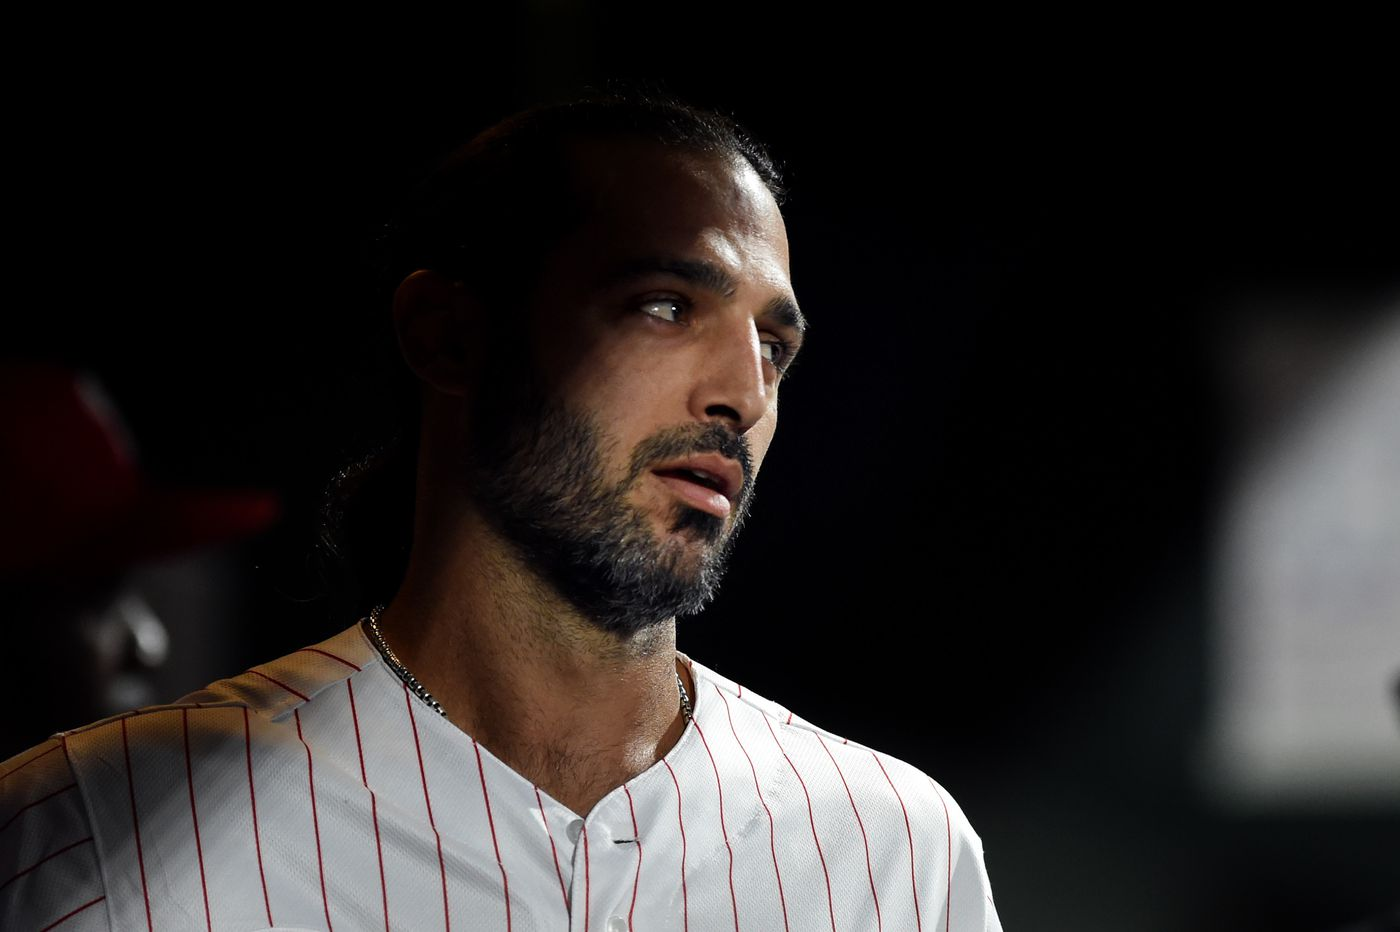 Sean Rodriguez apologizes for calling Phillies fans 'entitled,' wishes he had used 'love over hate' to convey message